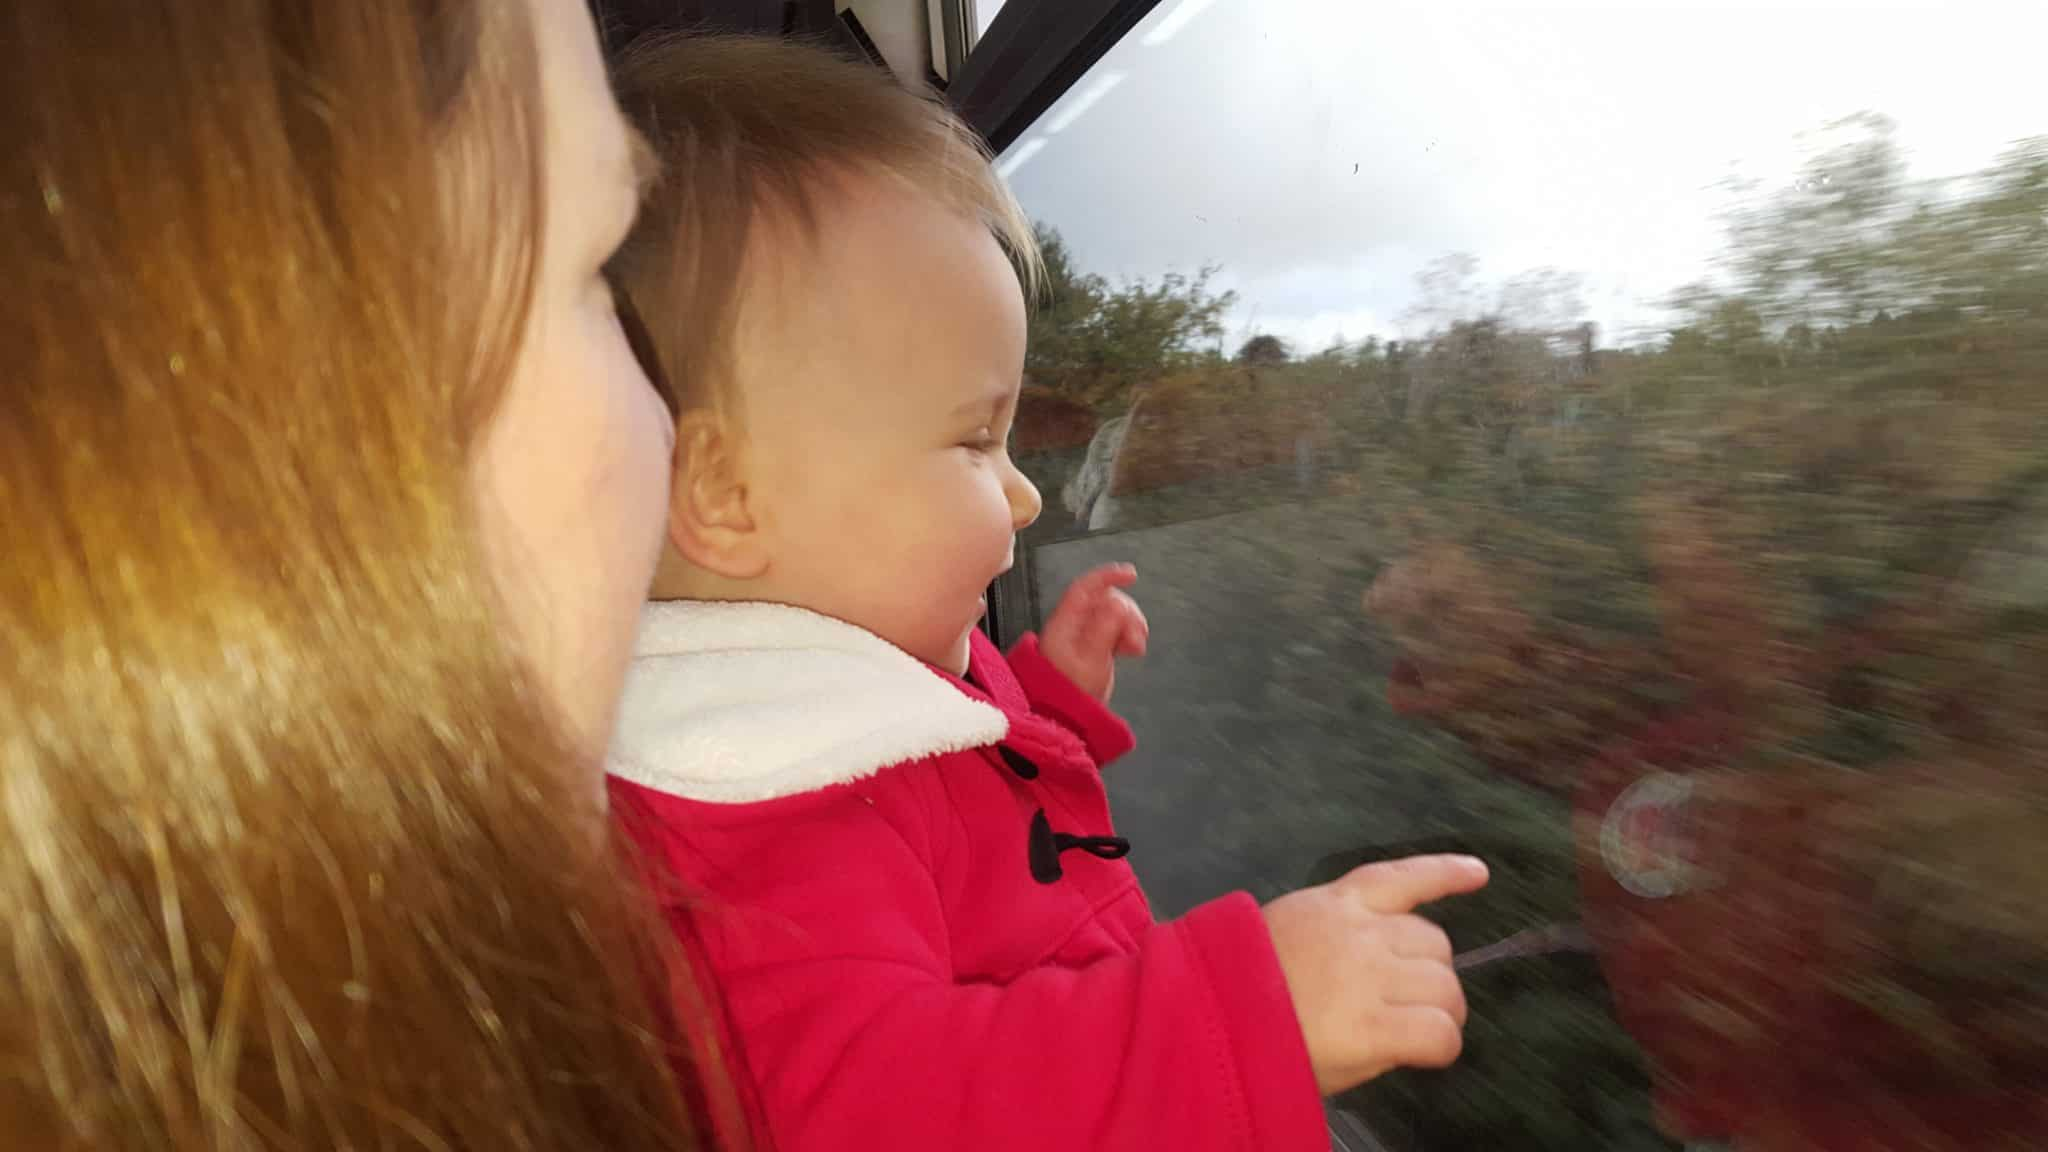 Me and Erin on the train